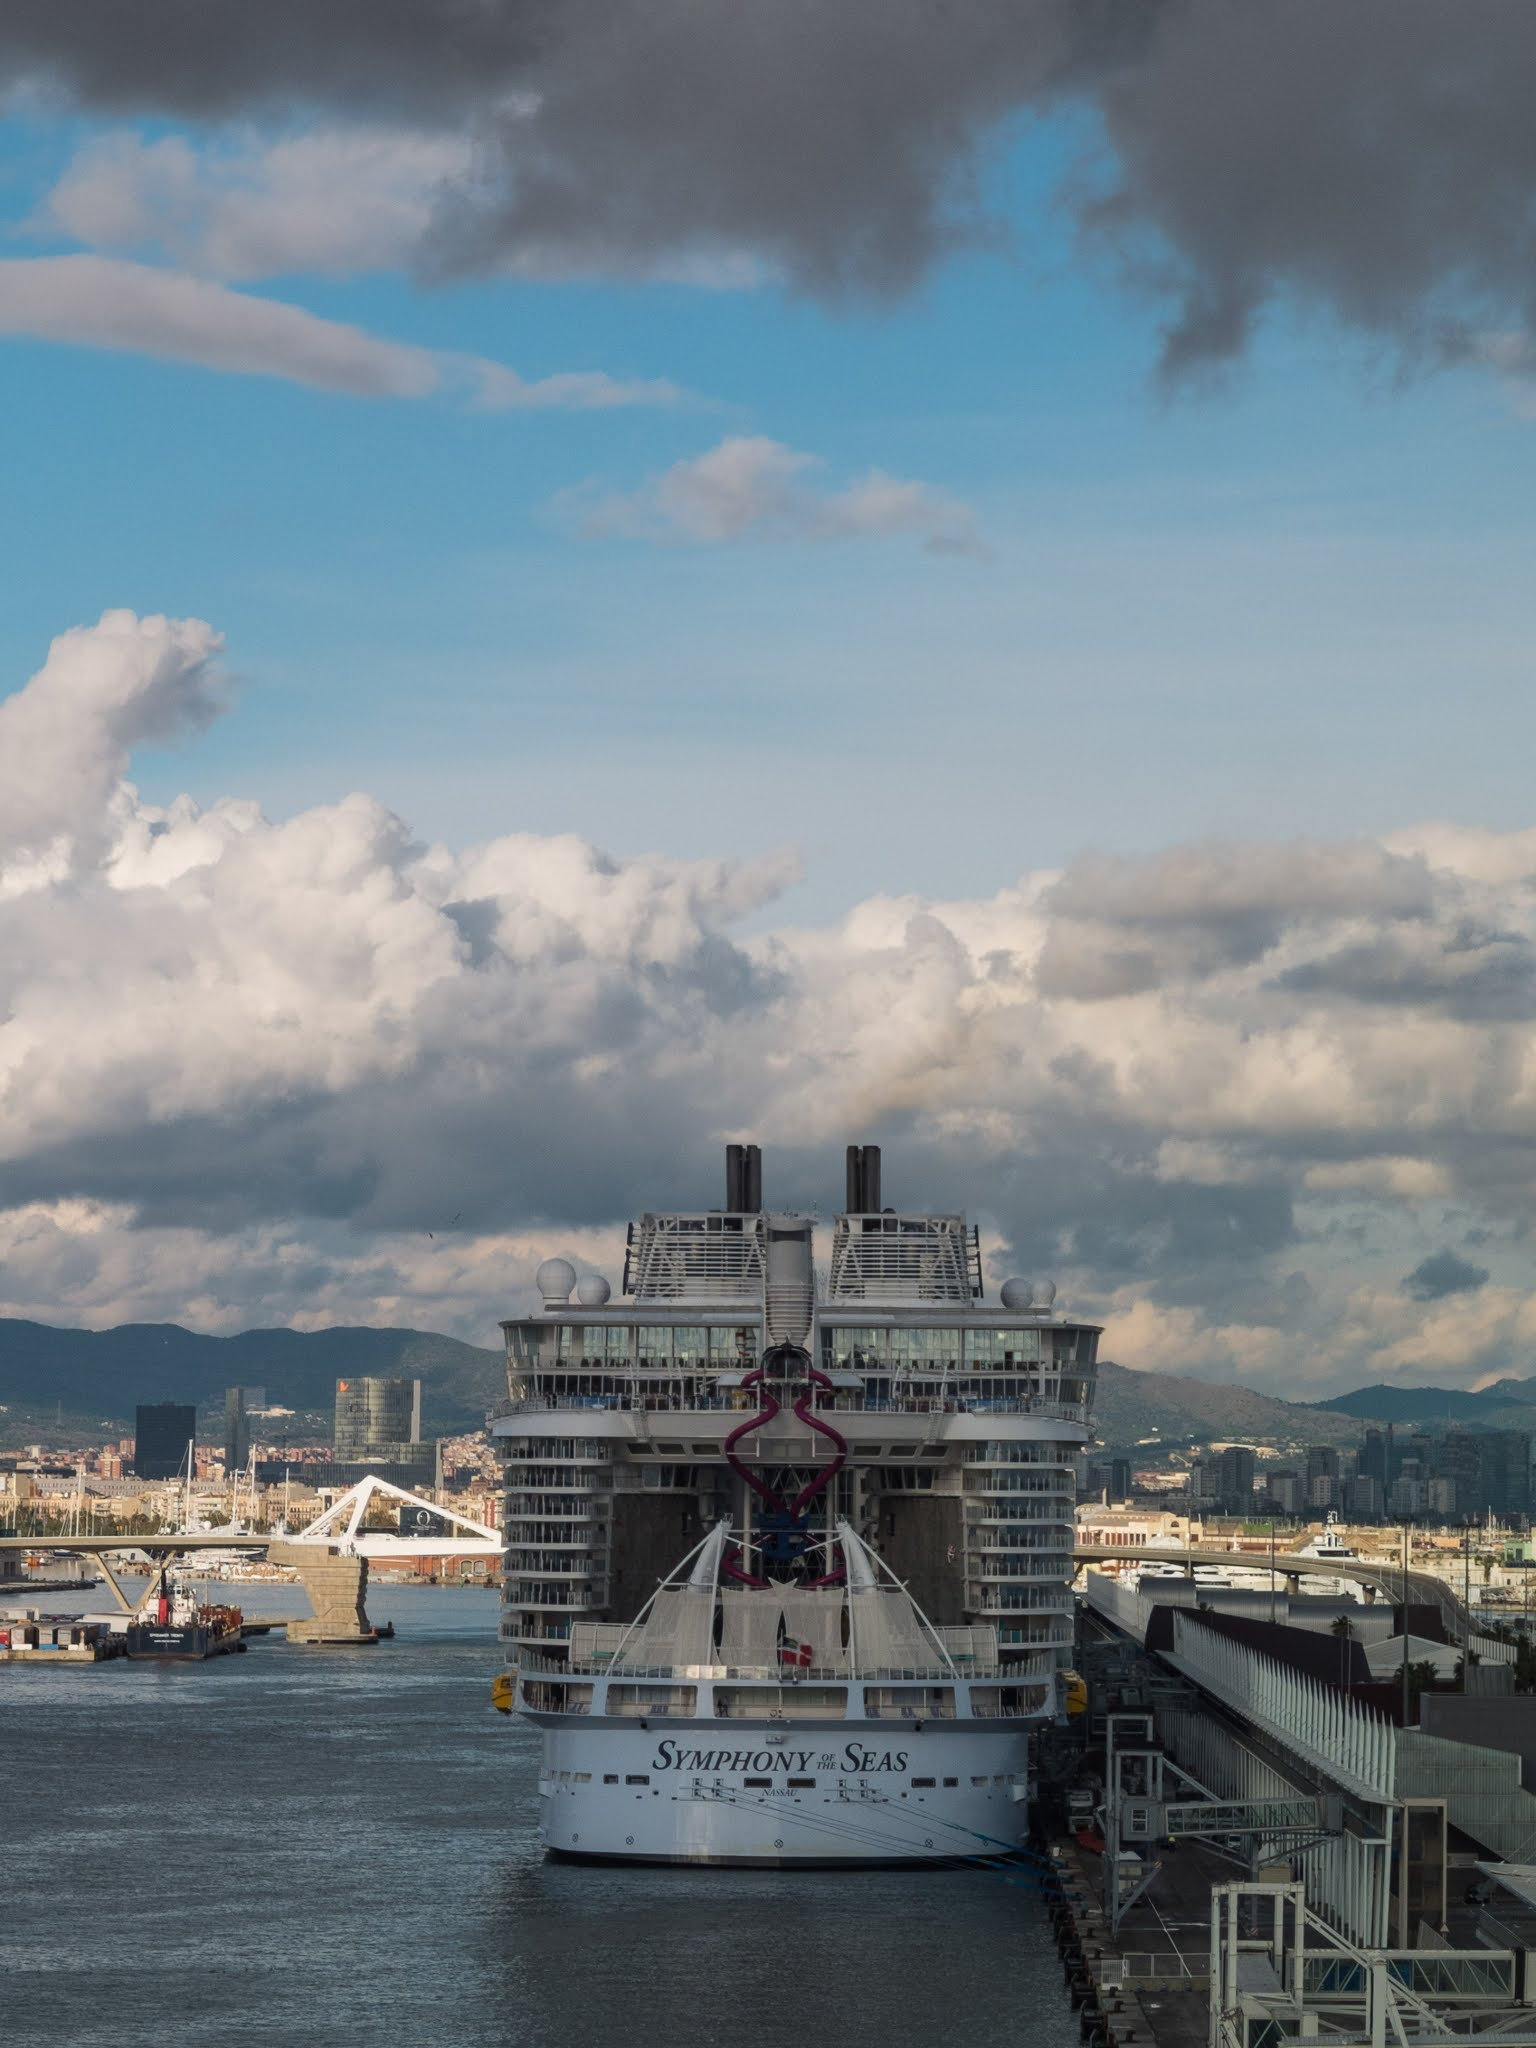 The Symphony of the Seas docked in the port of Barcelona in October 2018.